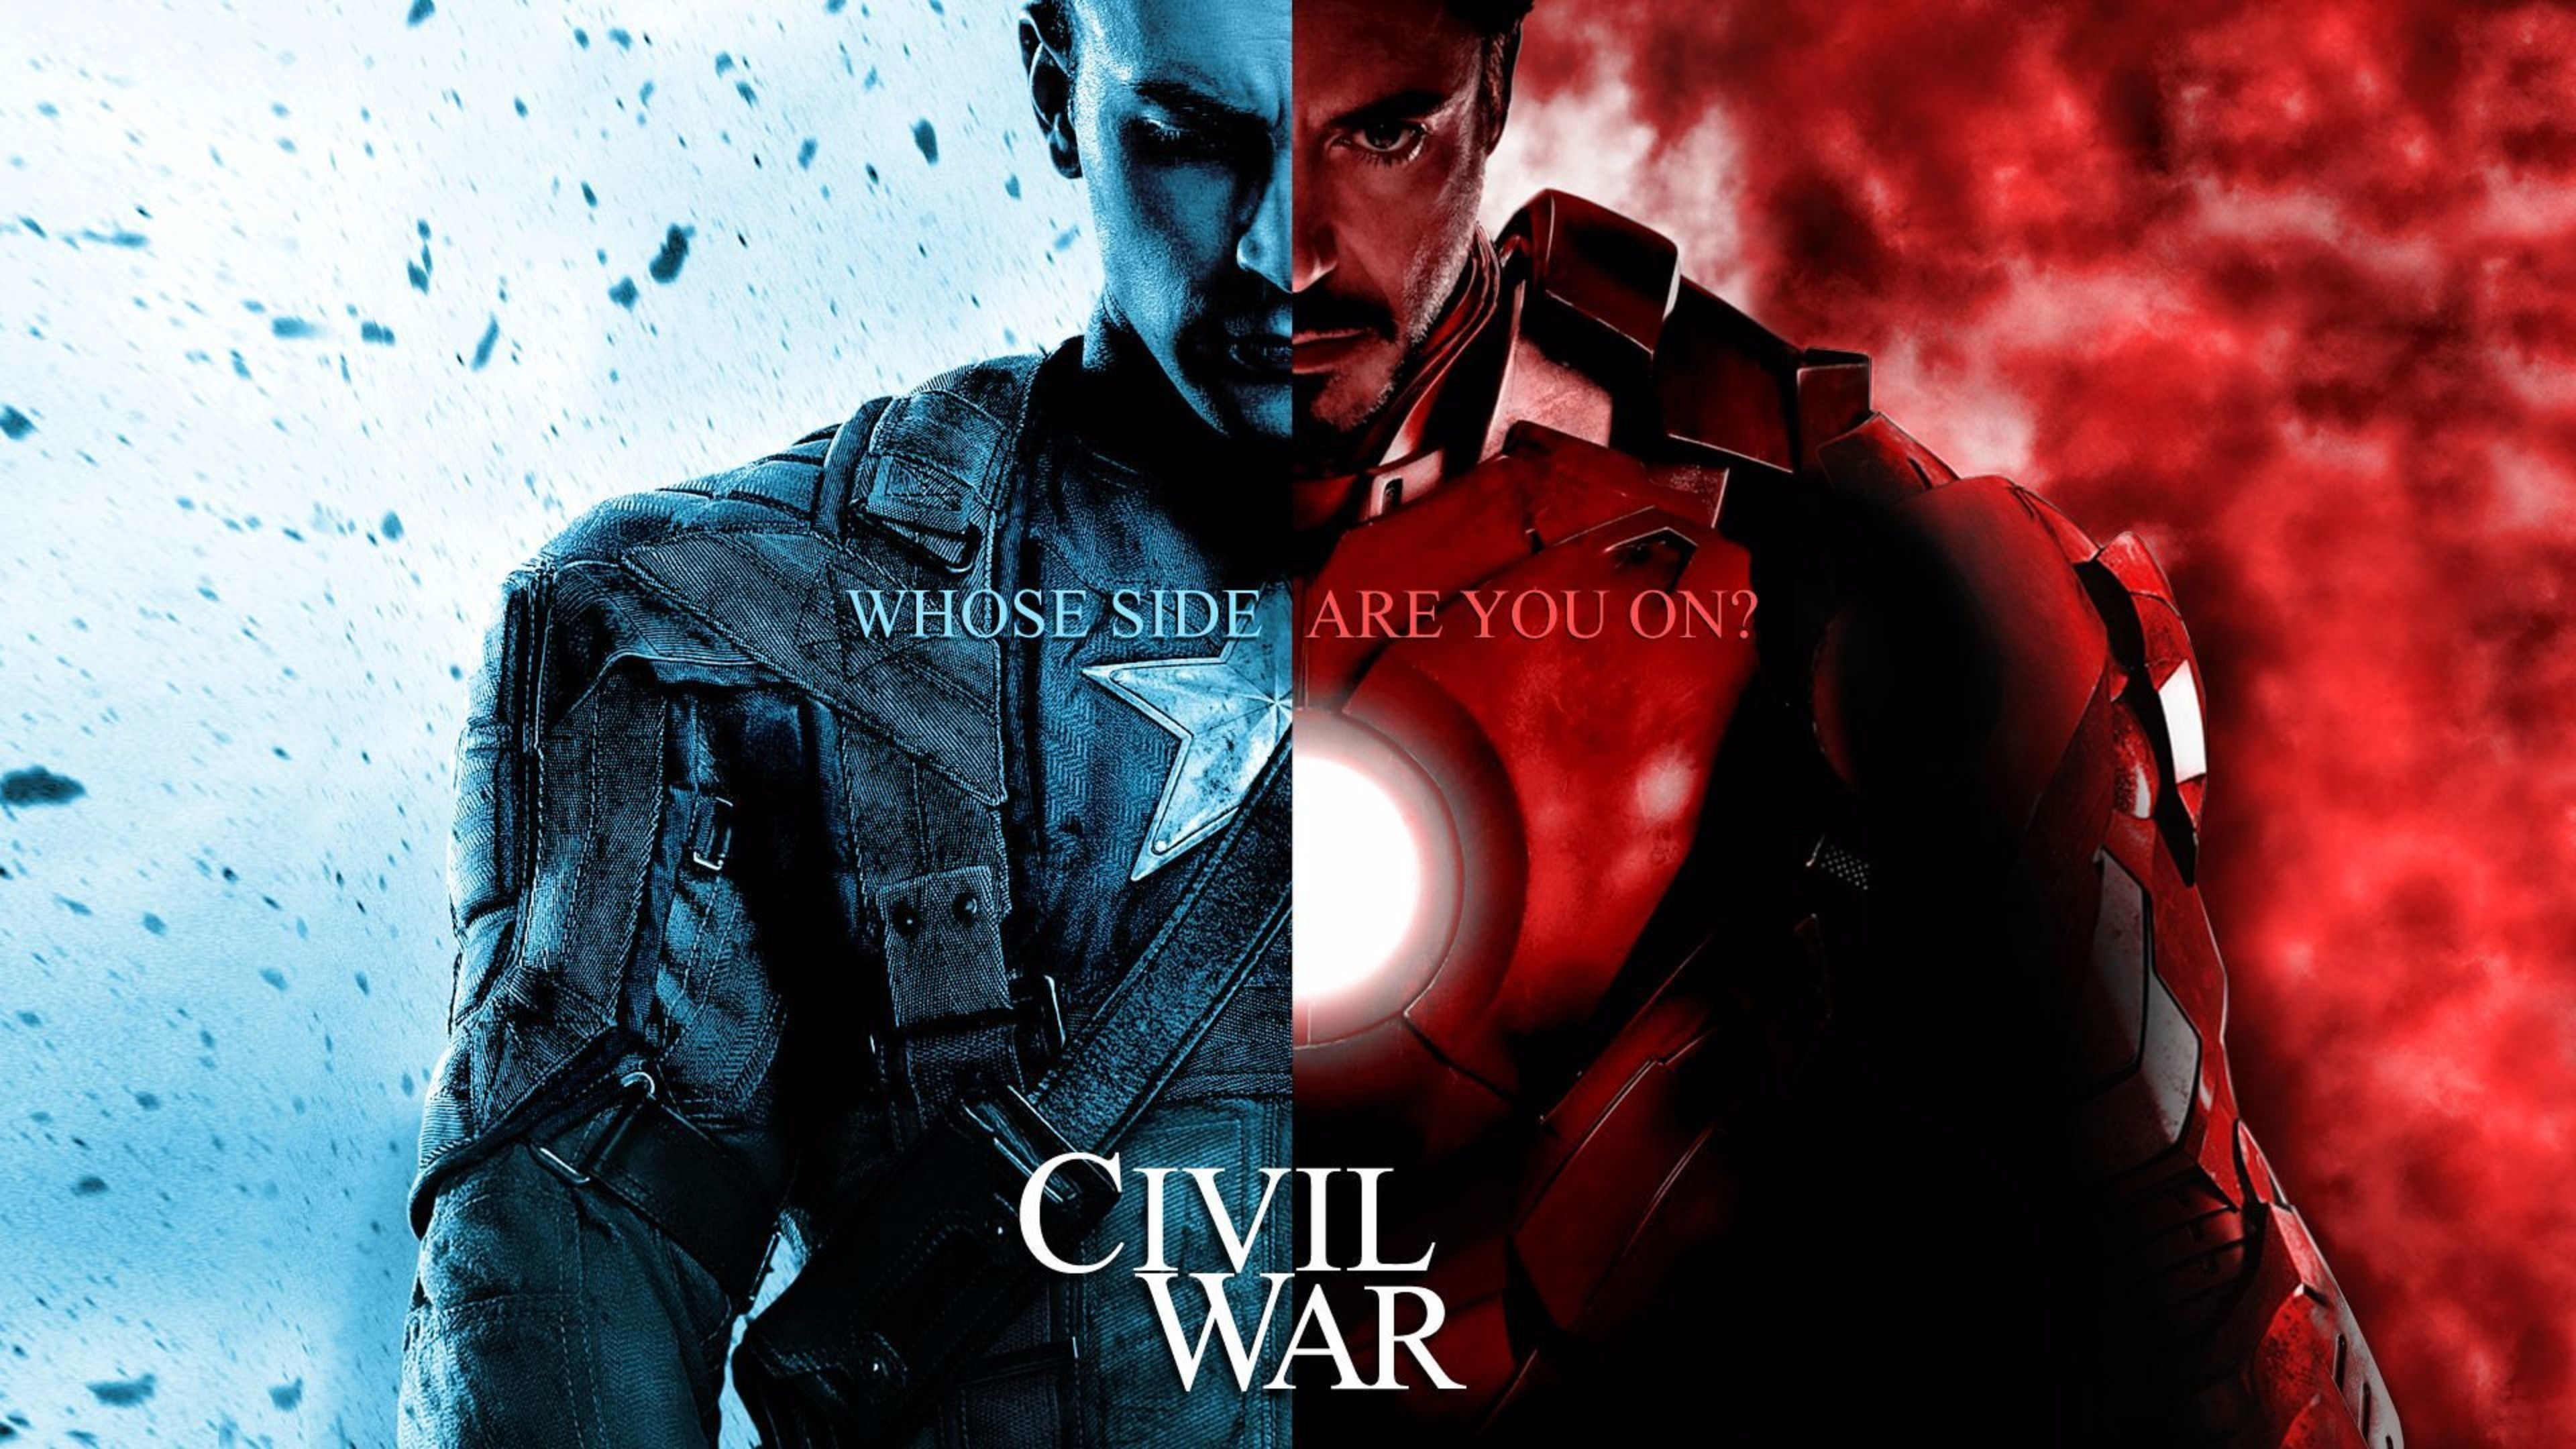 Iron Man Captain America Superhero Wallpaper Iron Man Vs Captain America Civil War Marvel Civil War Movies